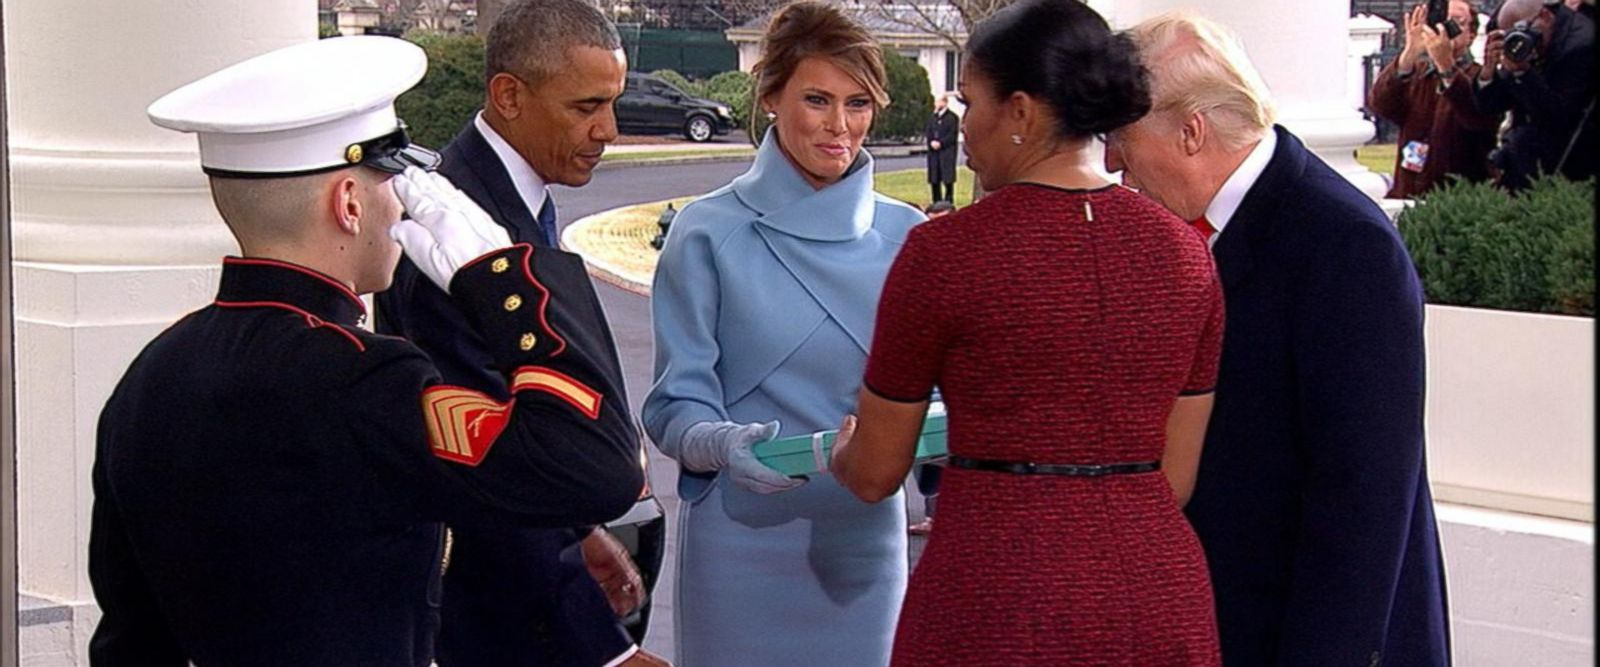 VIDEO: Speculation Grows Over Melania's Tiffany Box Gift to Michelle Obama